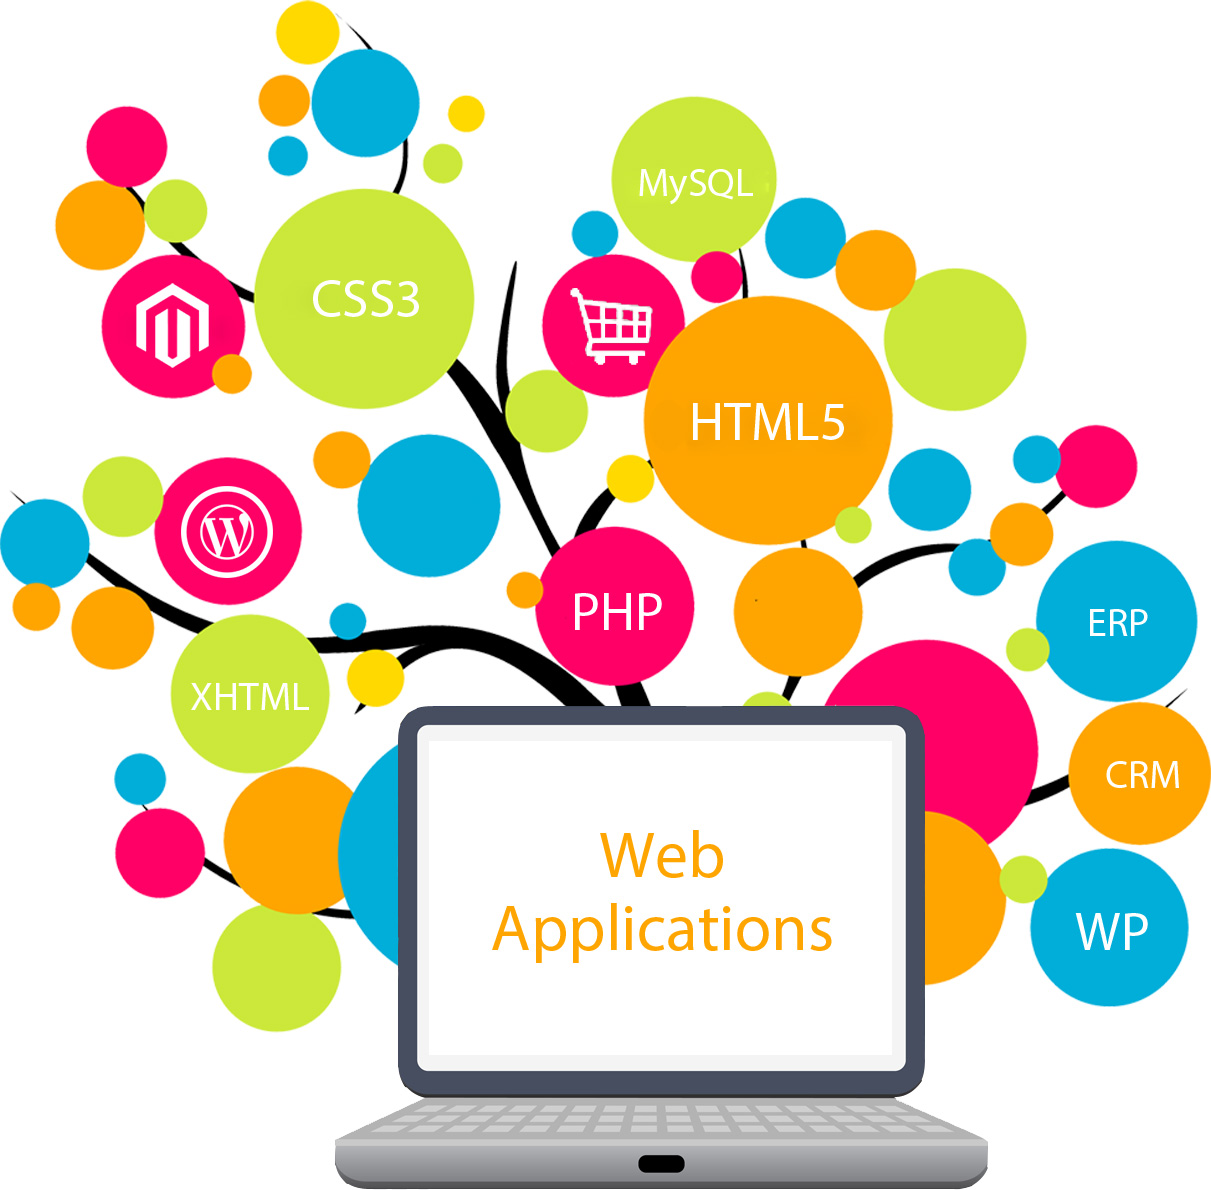 Advantages of Presenting a good Web Application